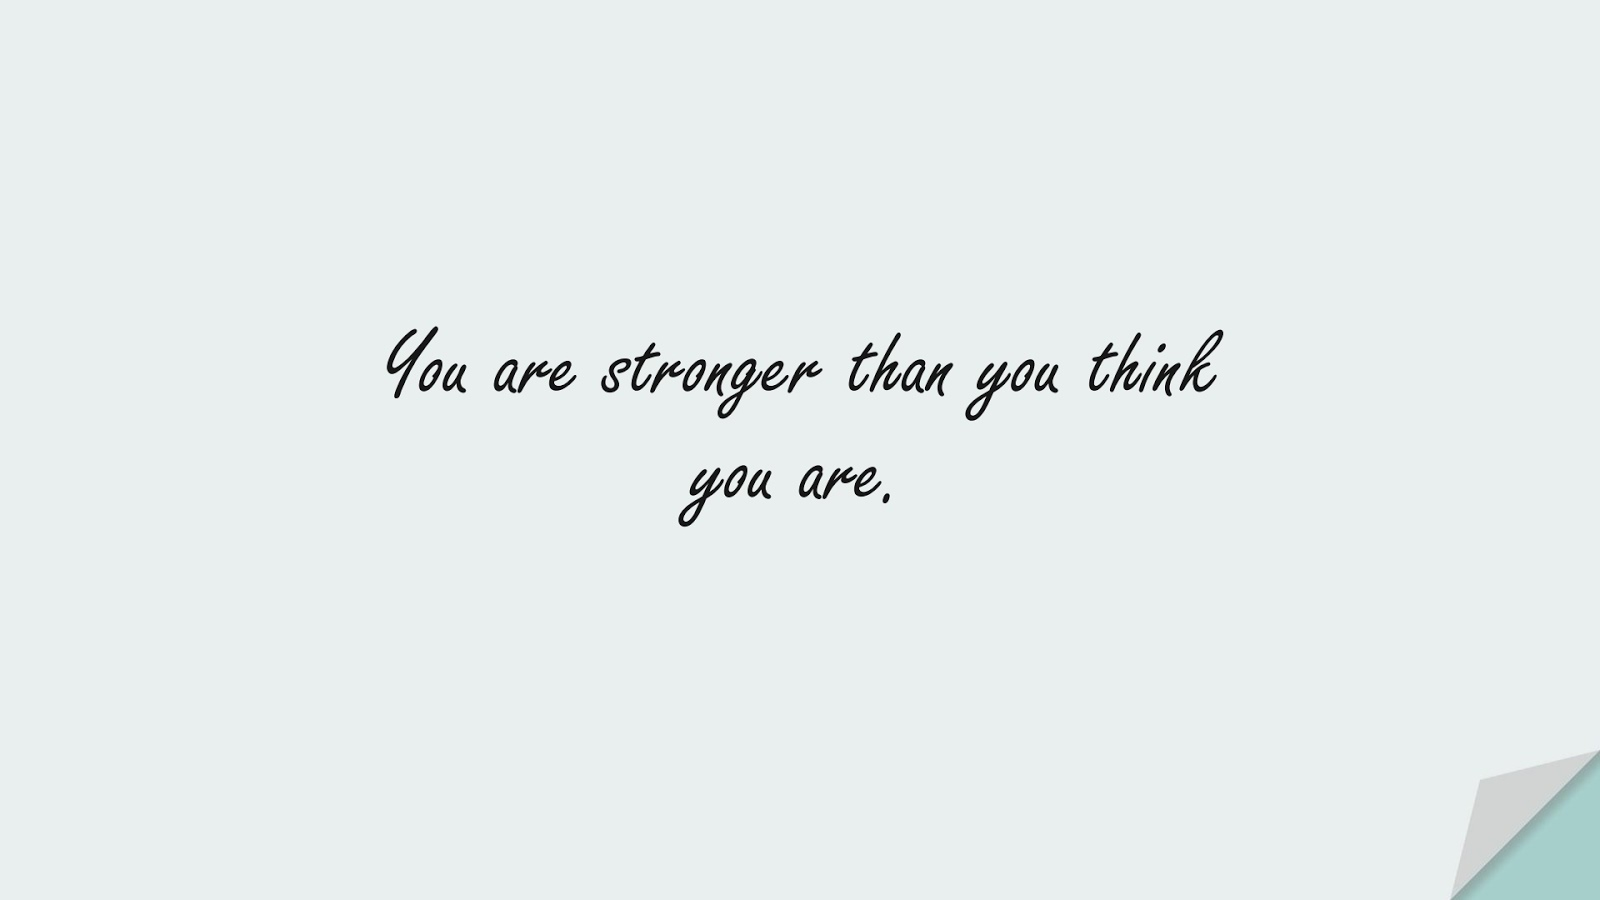 You are stronger than you think you are.FALSE